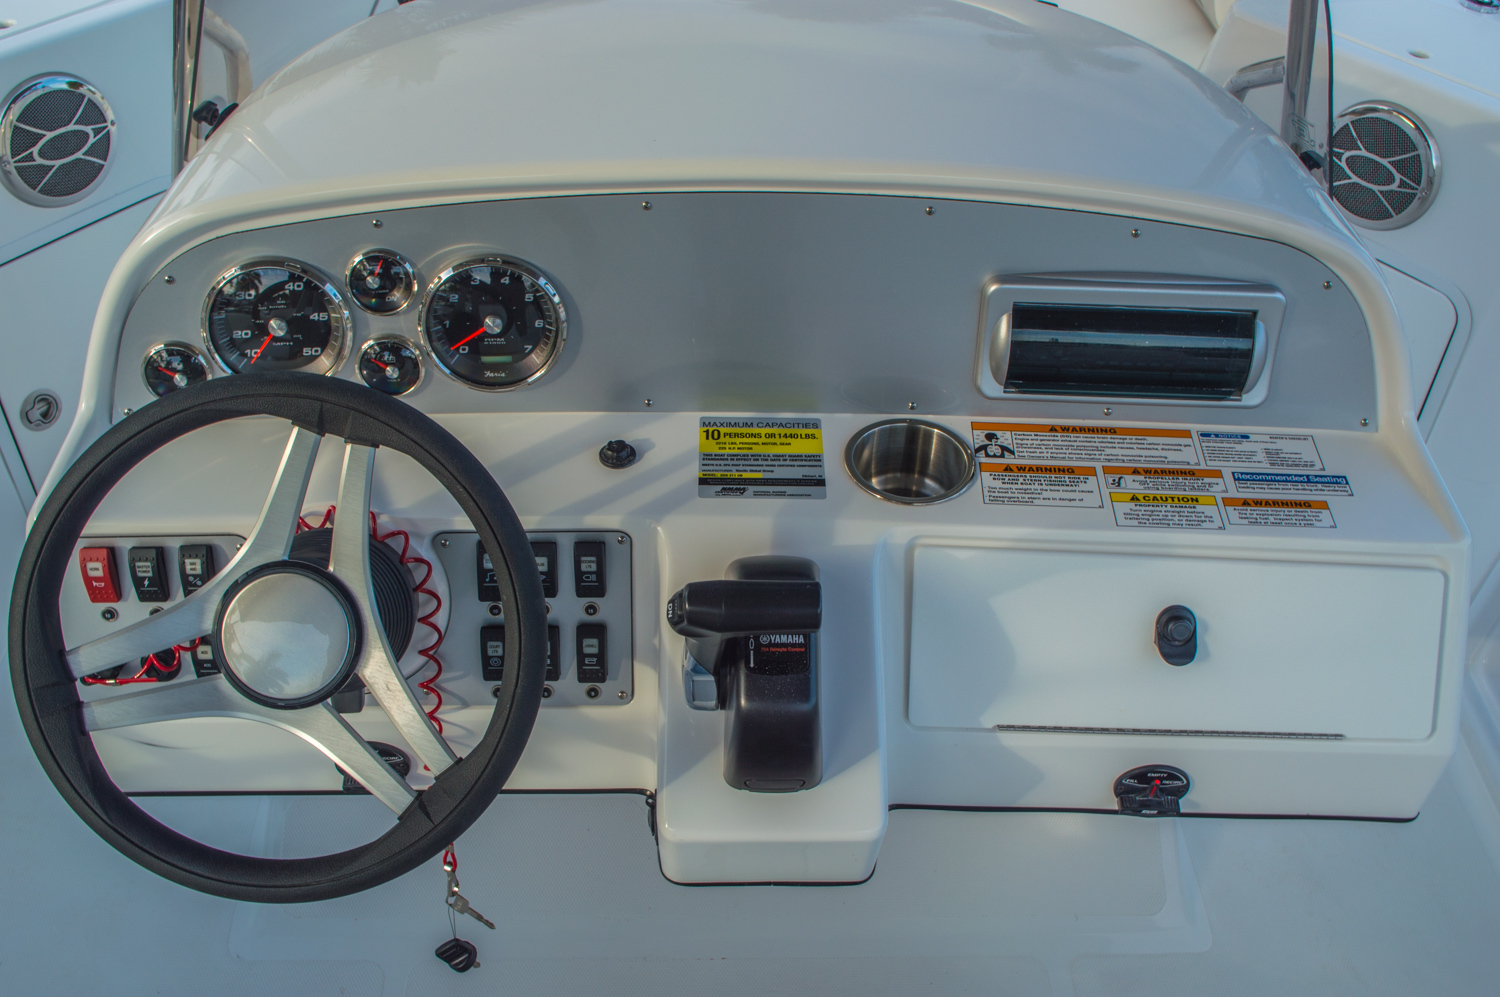 Thumbnail 22 for New 2016 Hurricane CC211 Center Consle boat for sale in West Palm Beach, FL